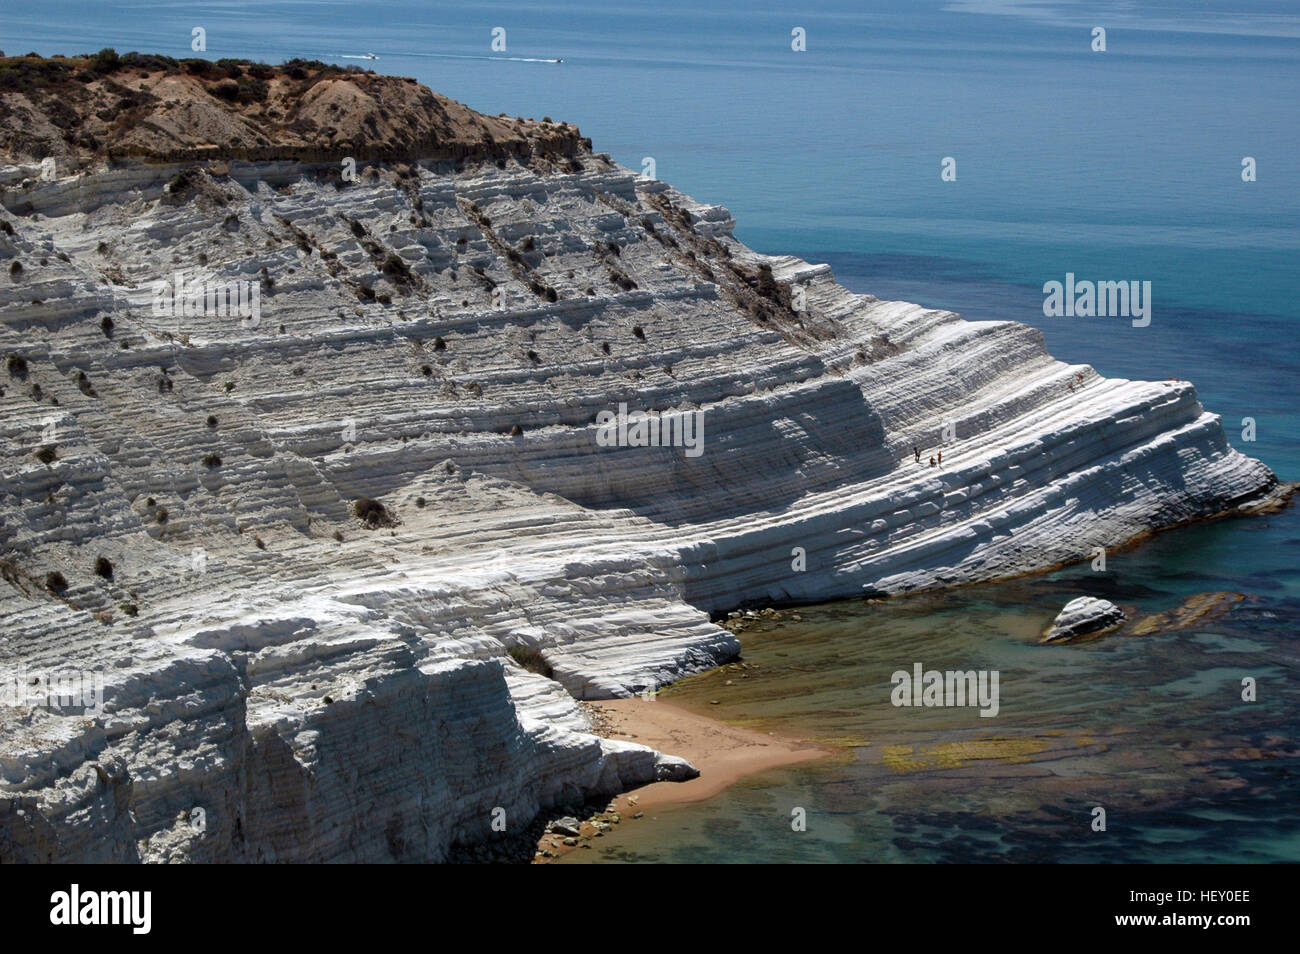 Scala dei Turchi (Stair of the Turks), Realmonte, Sicily, Italy - Stock Image